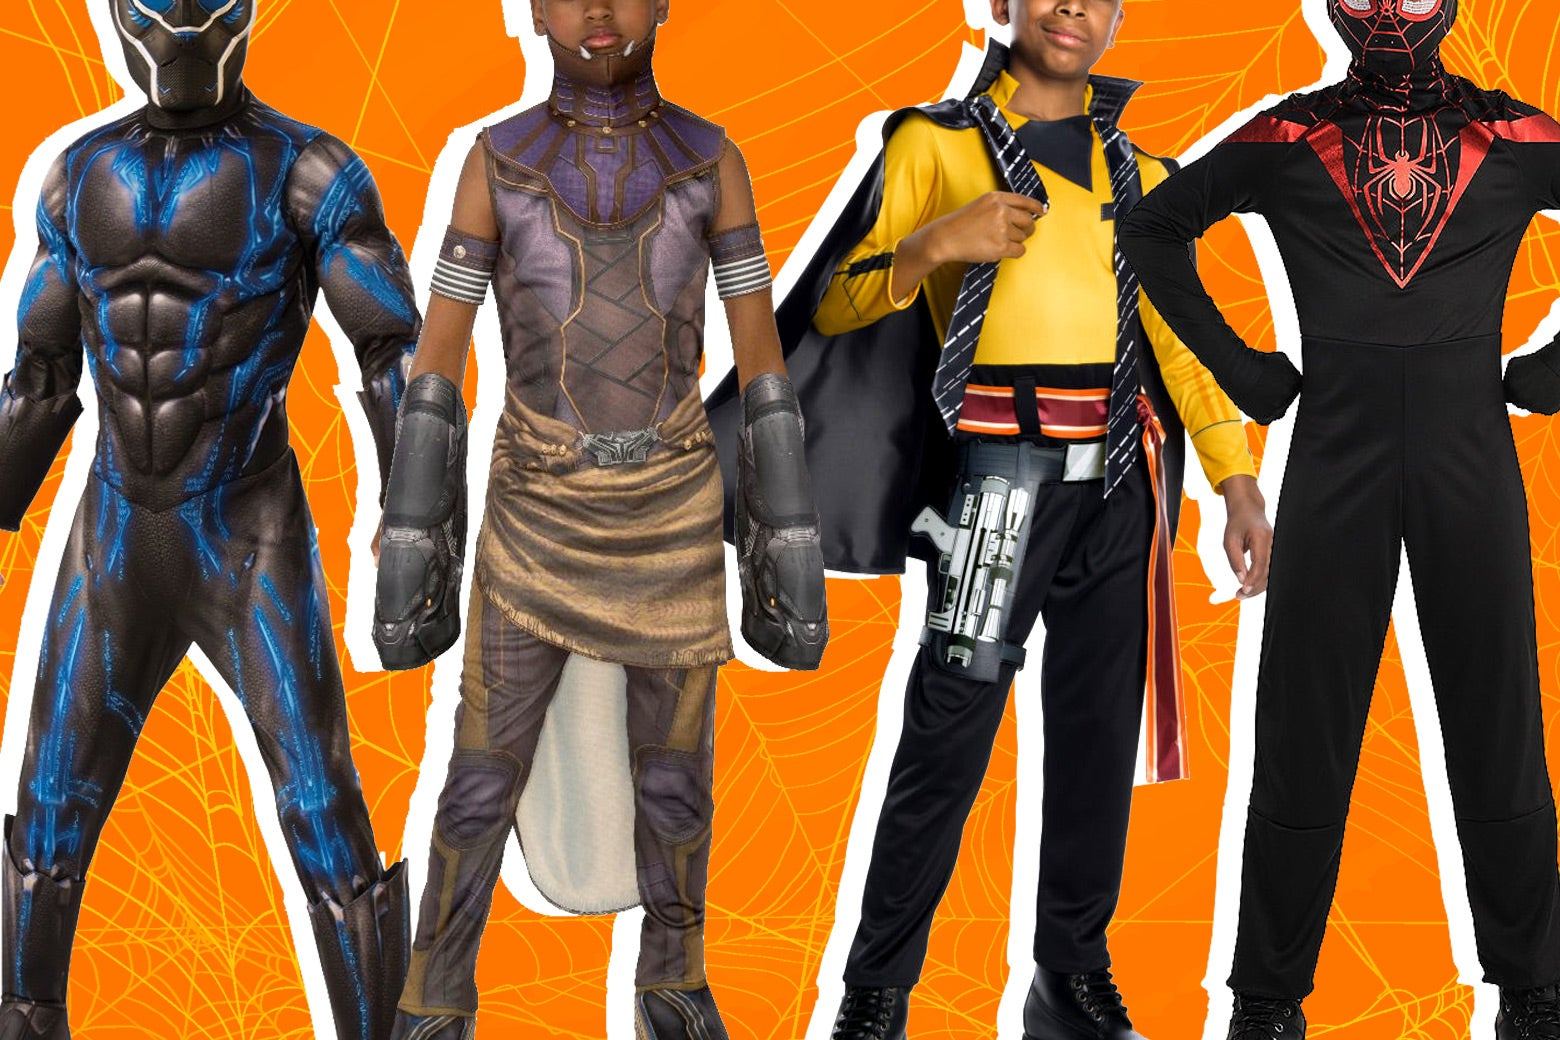 Black Panther, Shuri, Lando Calrissian, and Miles Morales children's costumes for Halloween.